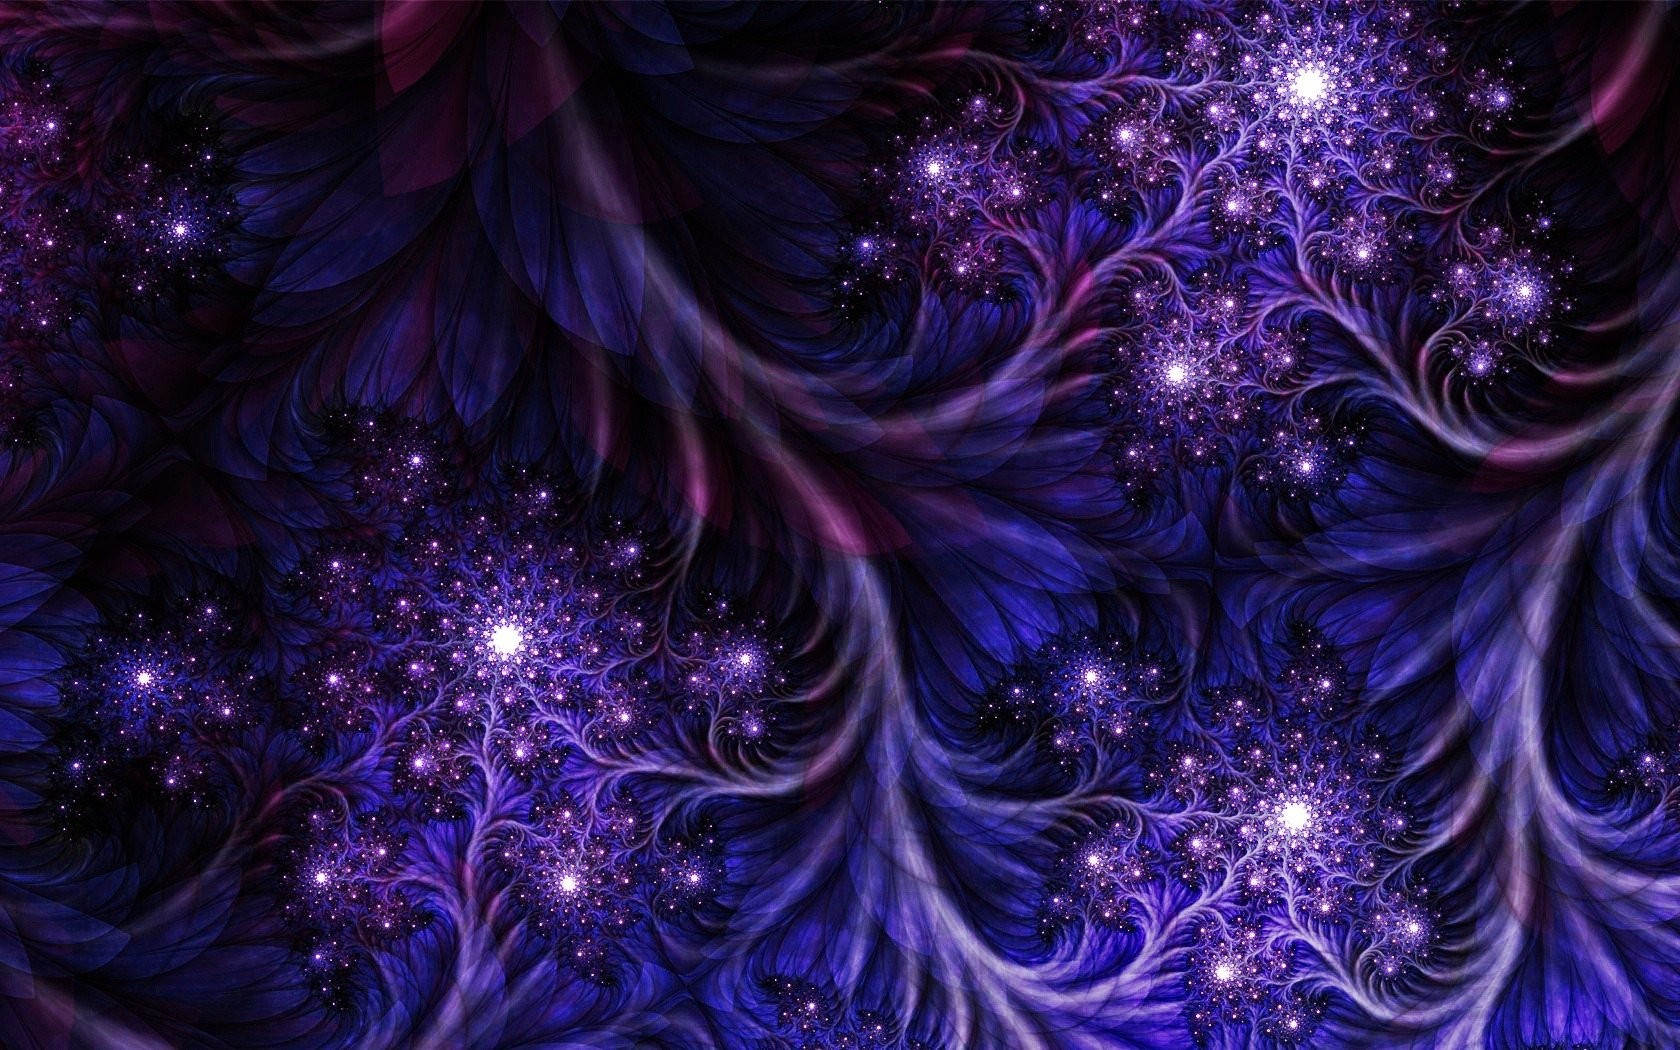 Hd Wallpapers Dark Purple High Definition Abstract Dark High Resolution Purple Background 91354 Hd Wallpaper Backgrounds Download